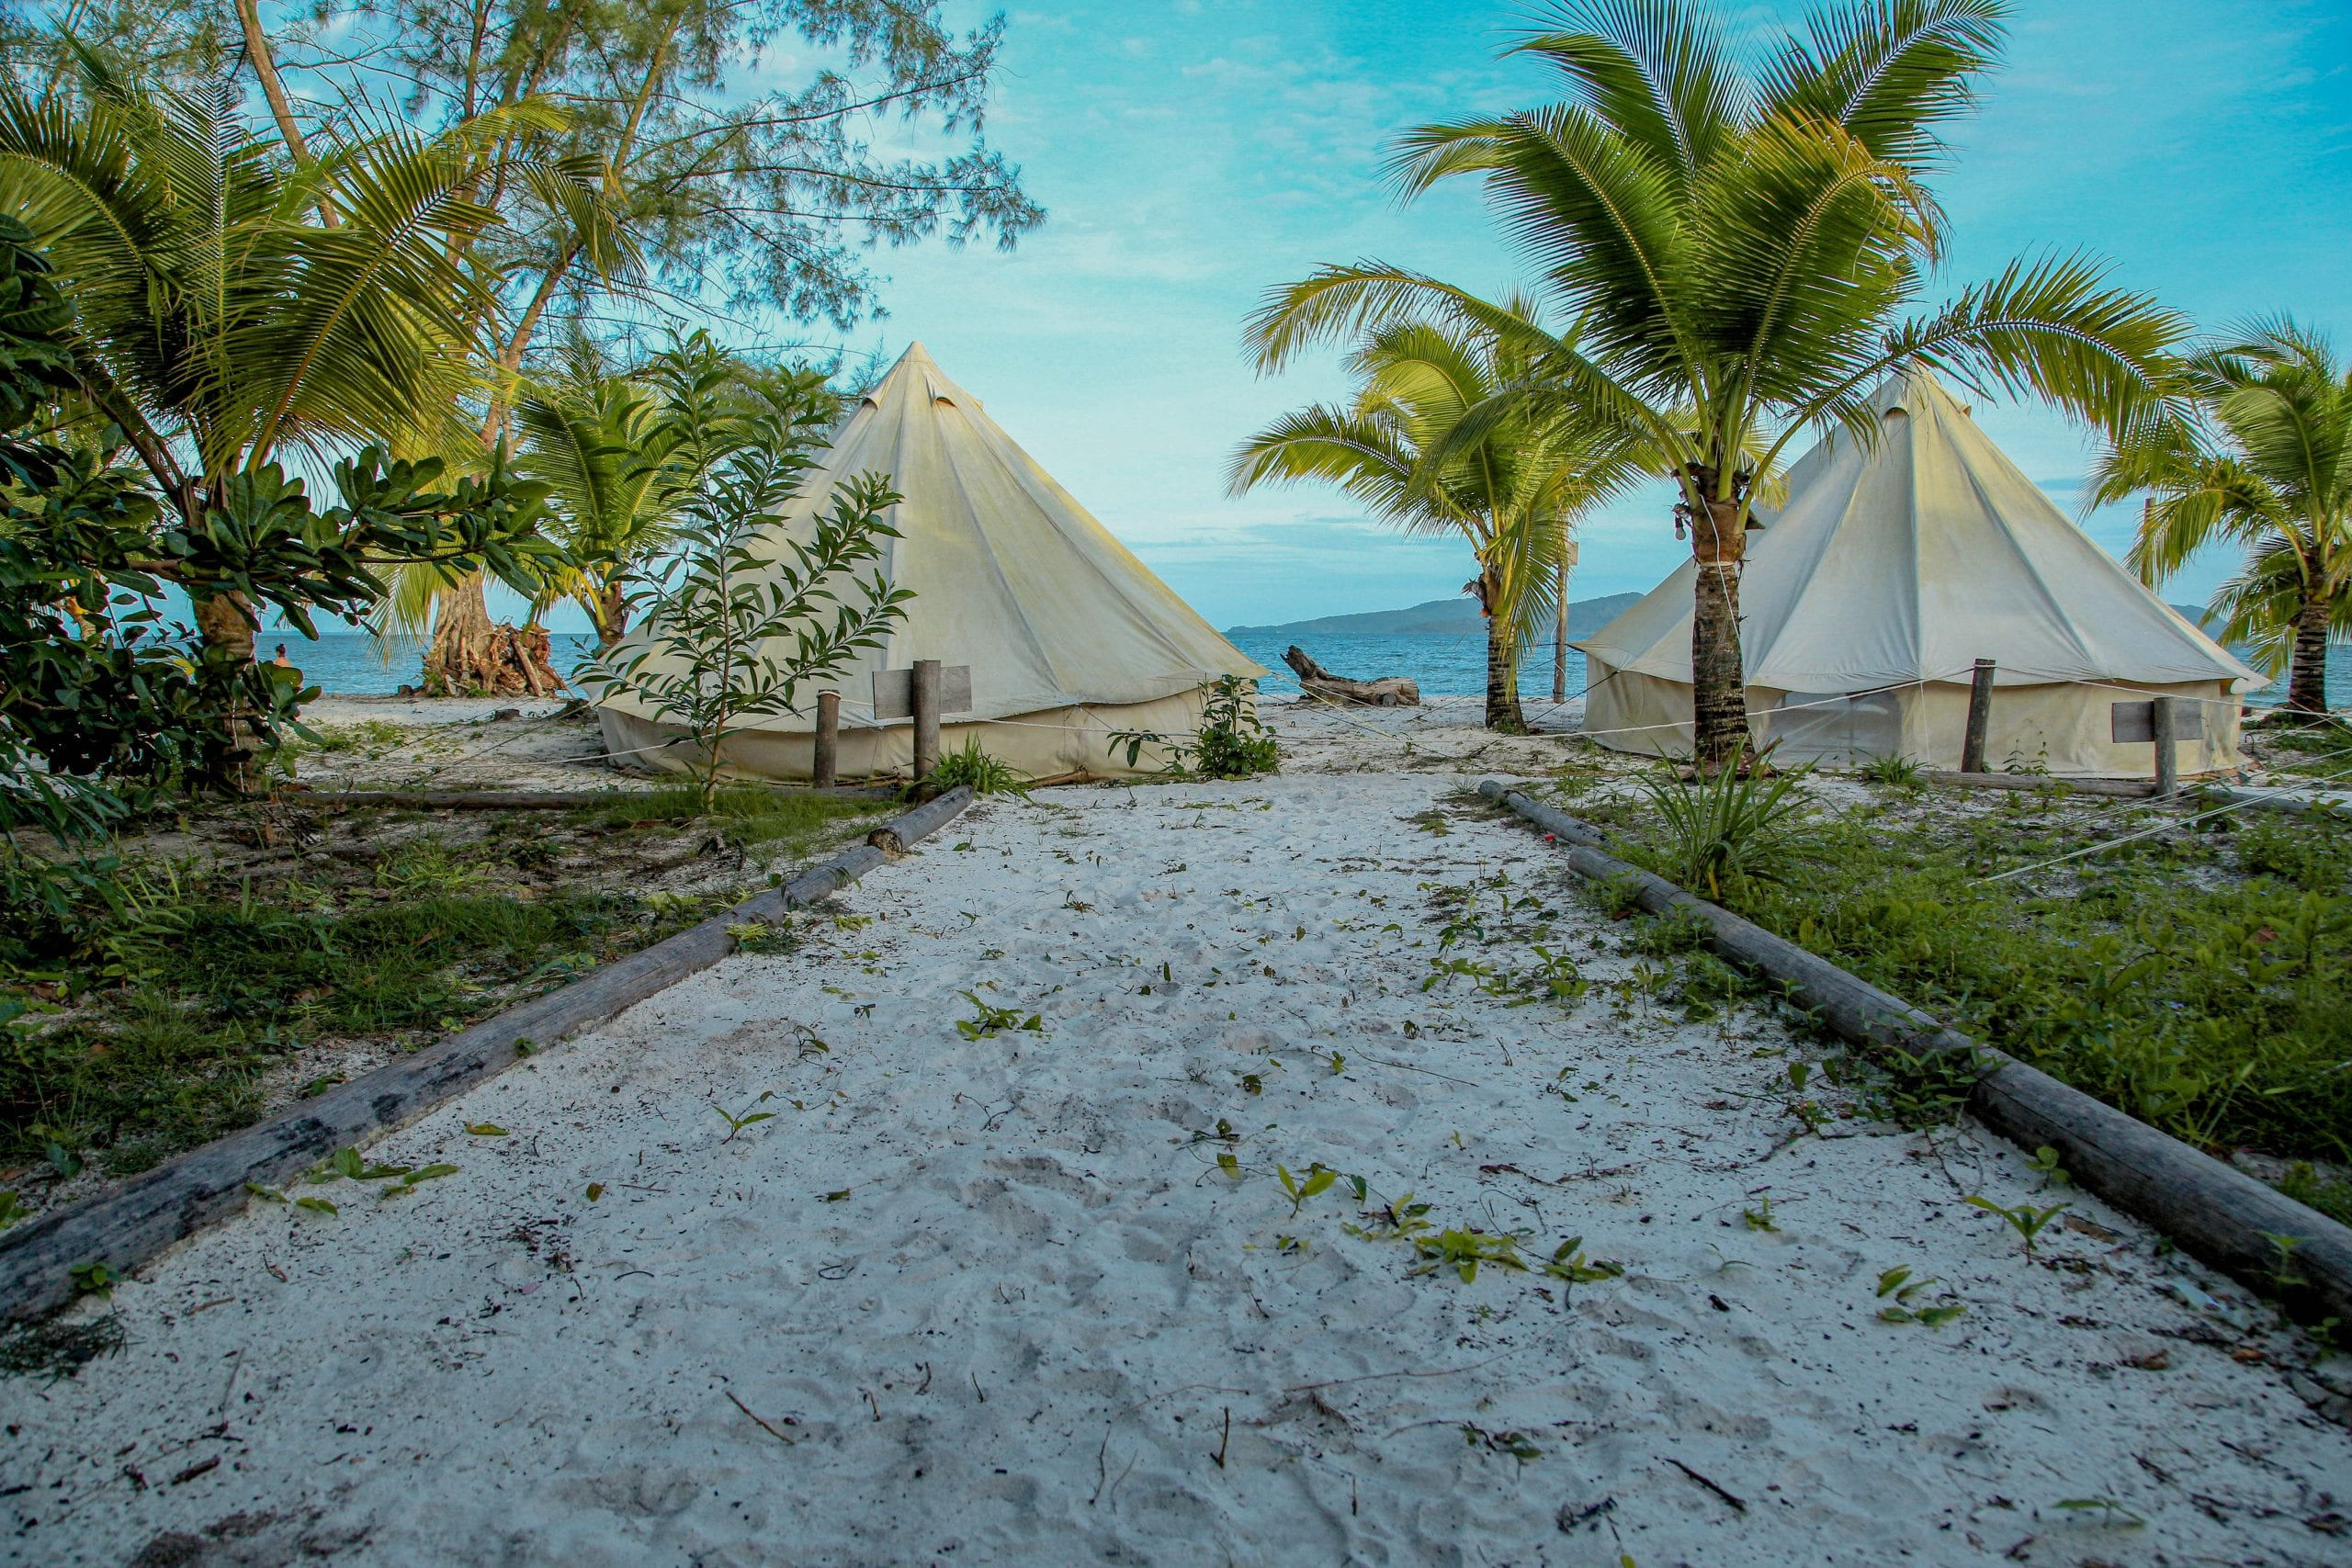 Yurts on the beach in Koh Rong, Cambodia